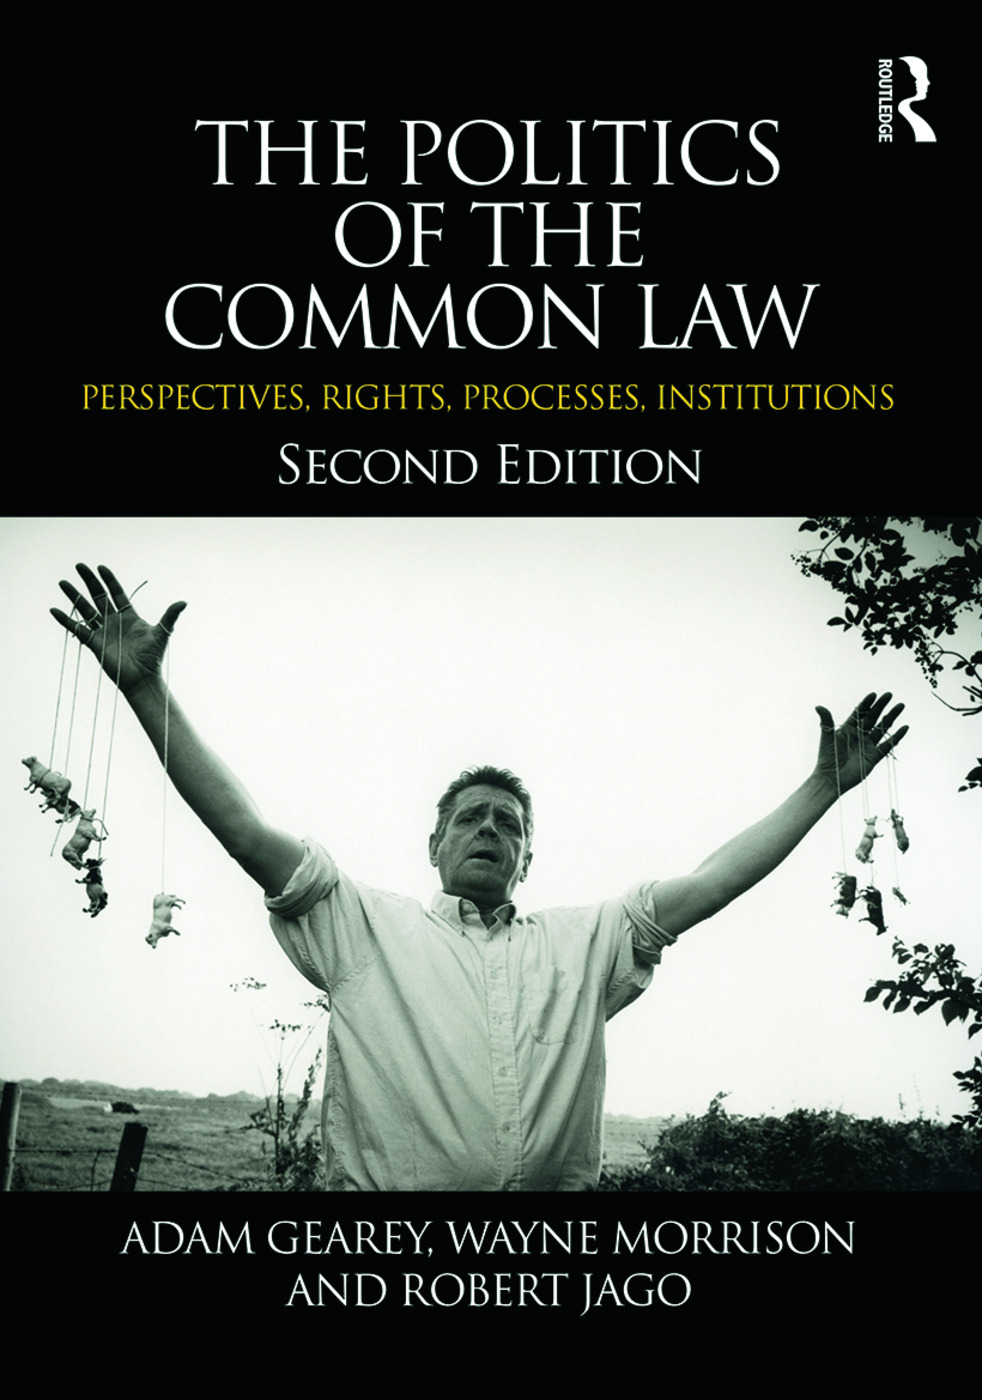 The Politics of the Common Law: Perspectives, Rights, Processes, Institutions, 2nd Edition (Paperback) book cover